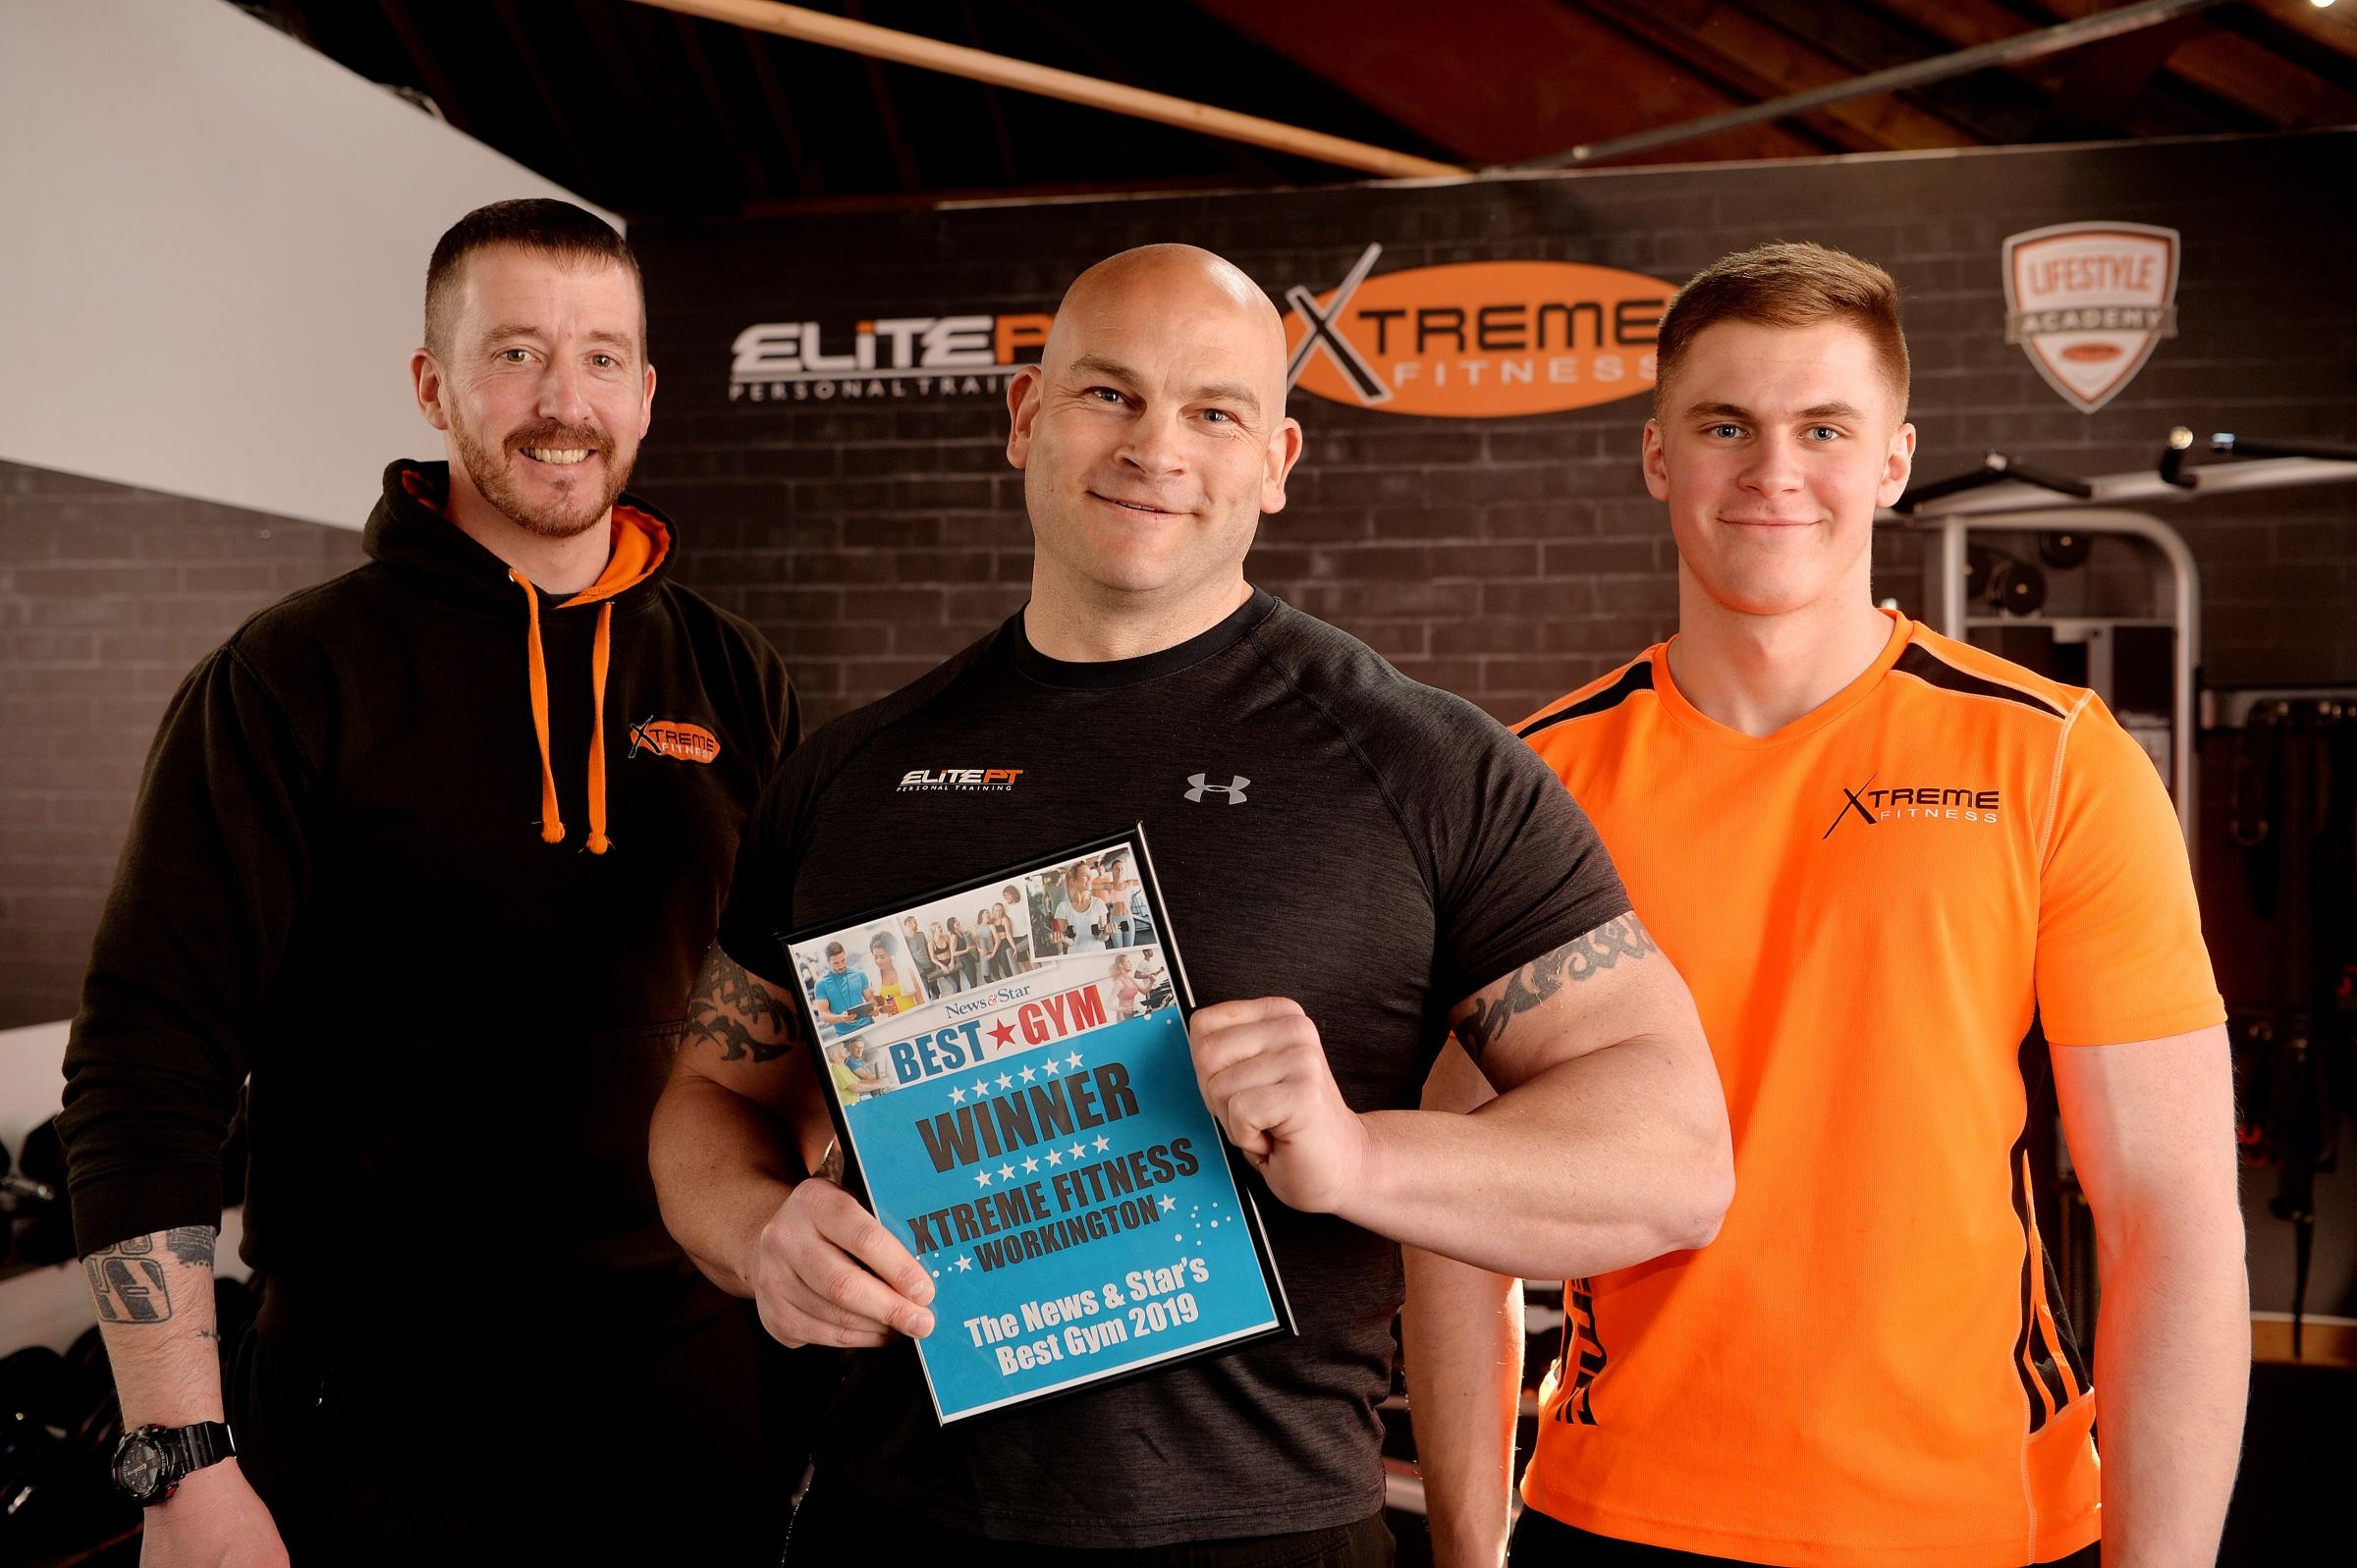 Xtreme Fitness won the News & Star 2019 Best Gym Award. Owner Lee Butterworth with staff Chris McClurry and Owen Harris